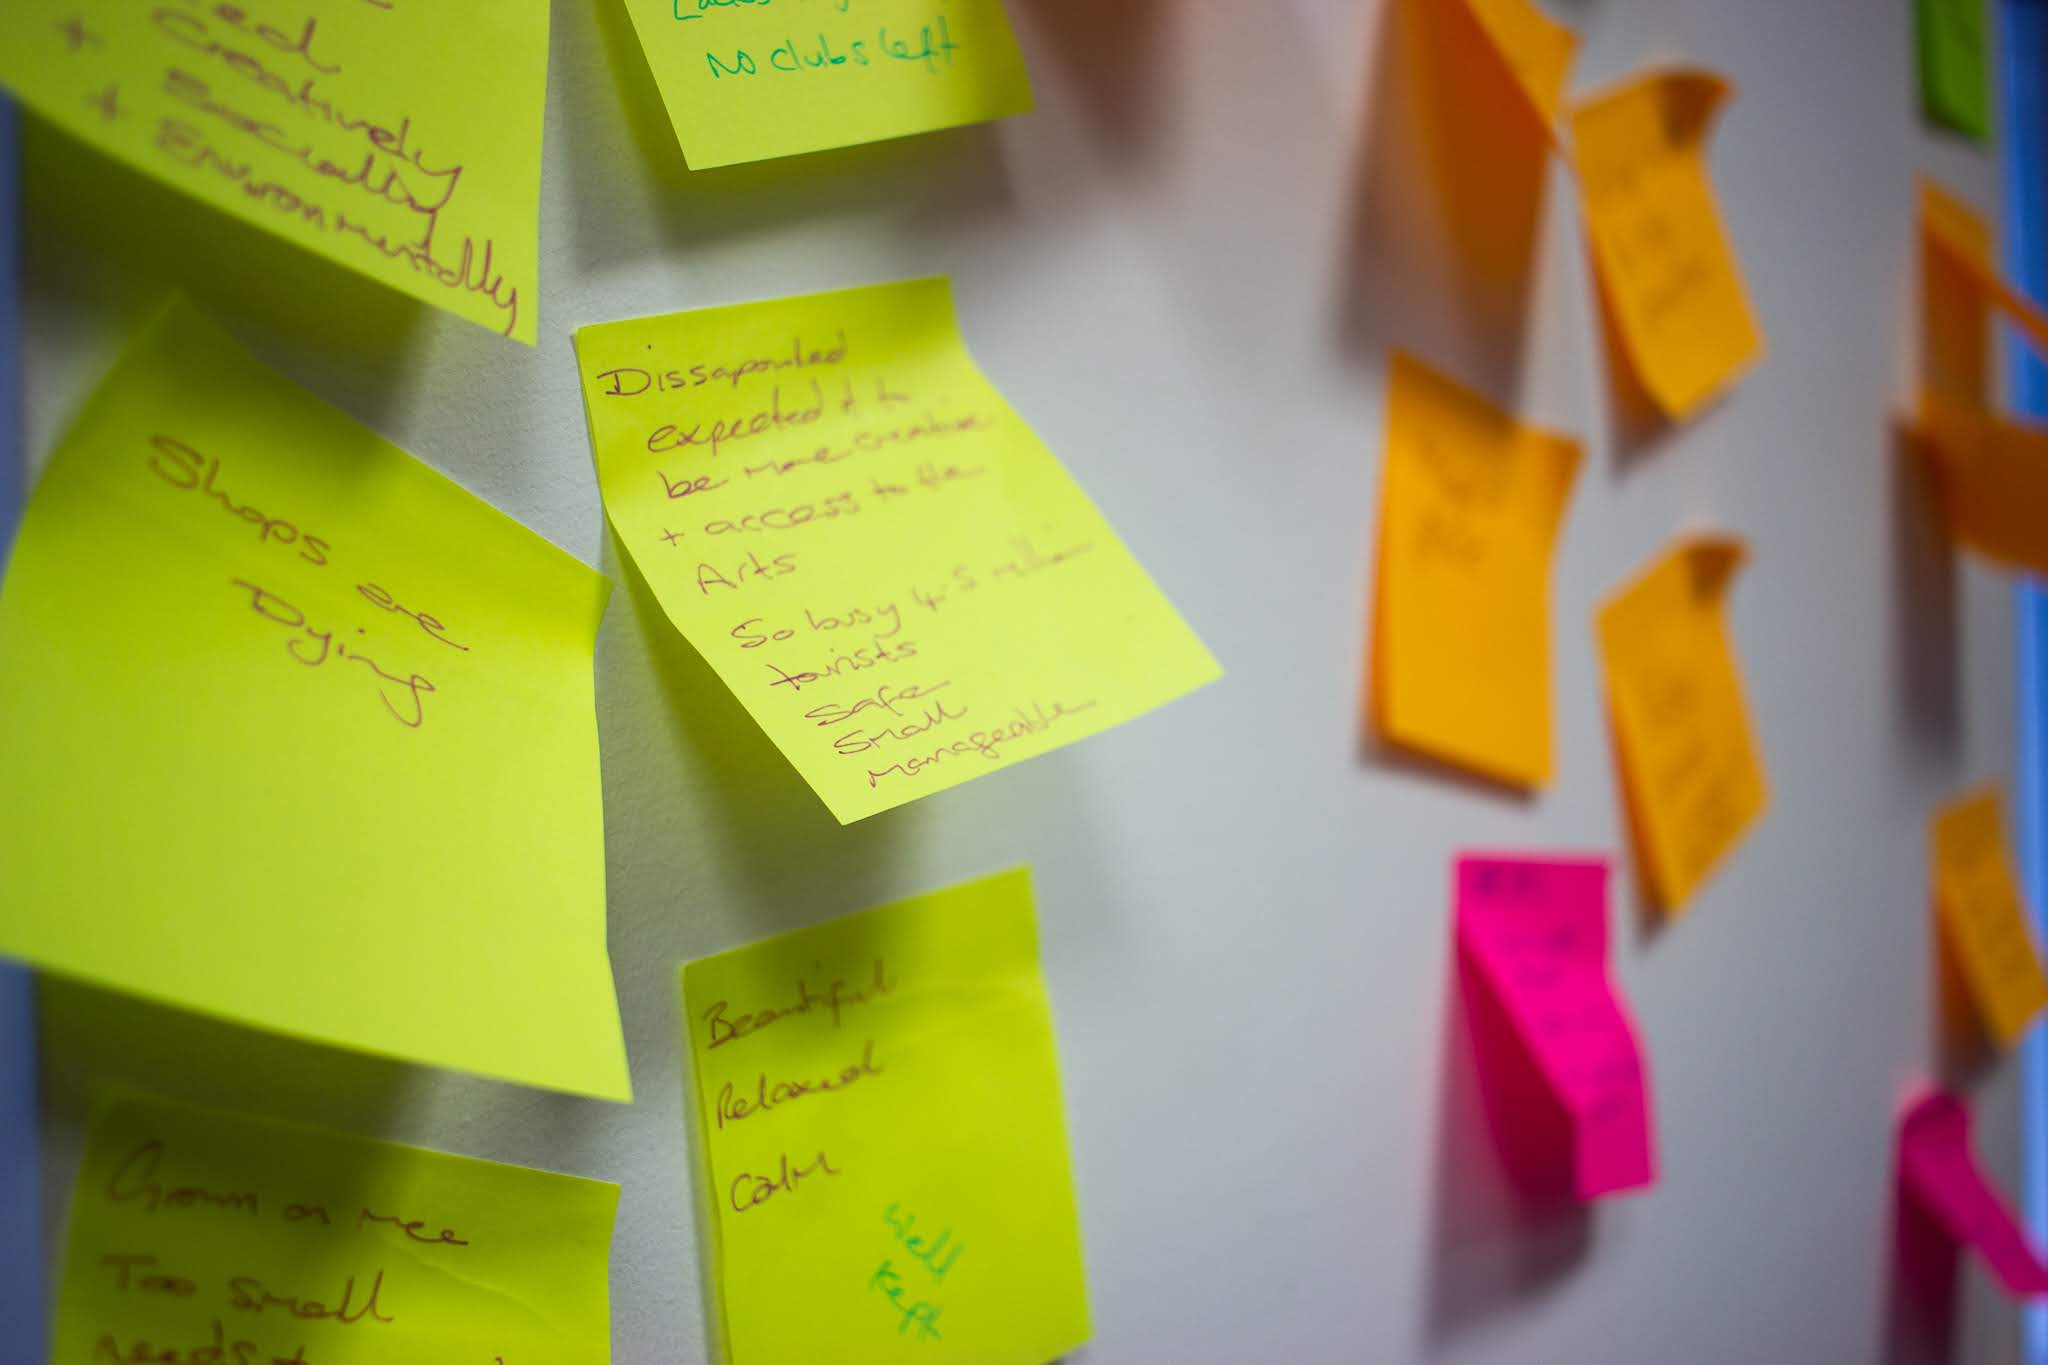 post-its-on-wall-in-workshop